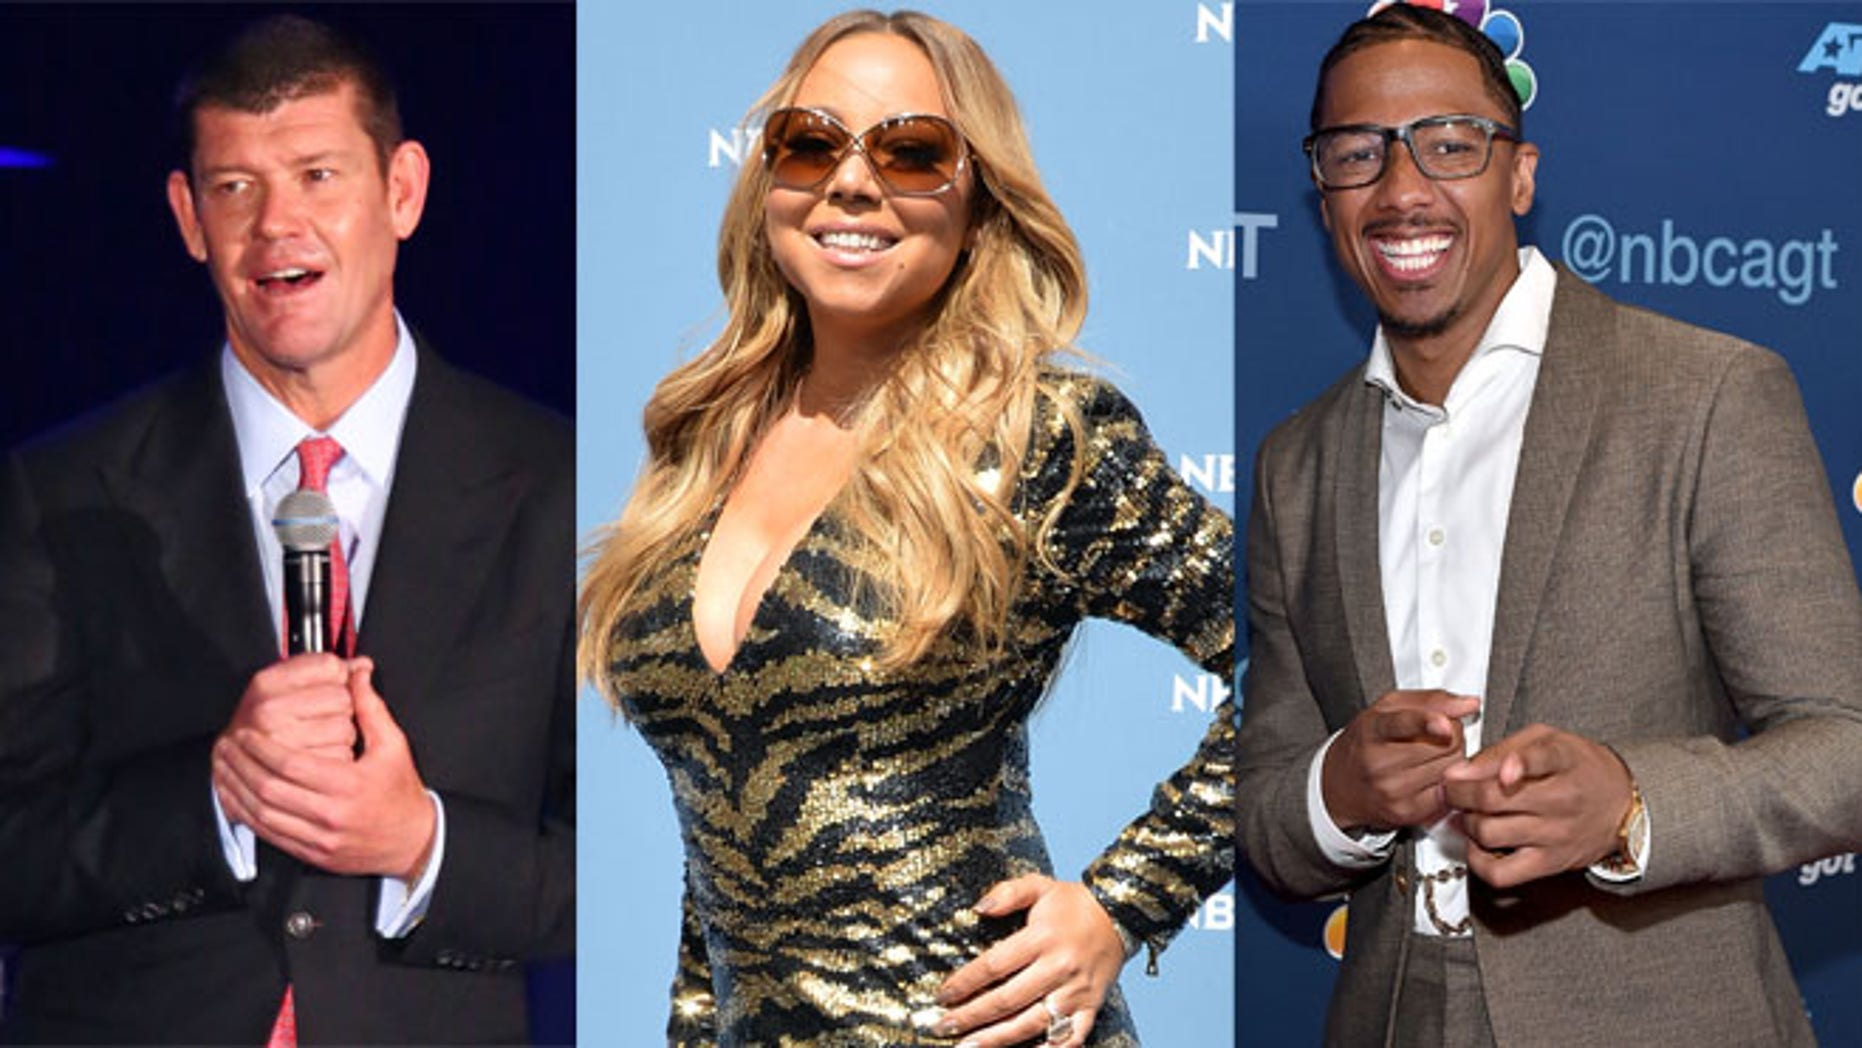 James Packer (left), Mariah Carey and Nick Cannon. (Photos: Getty Images)